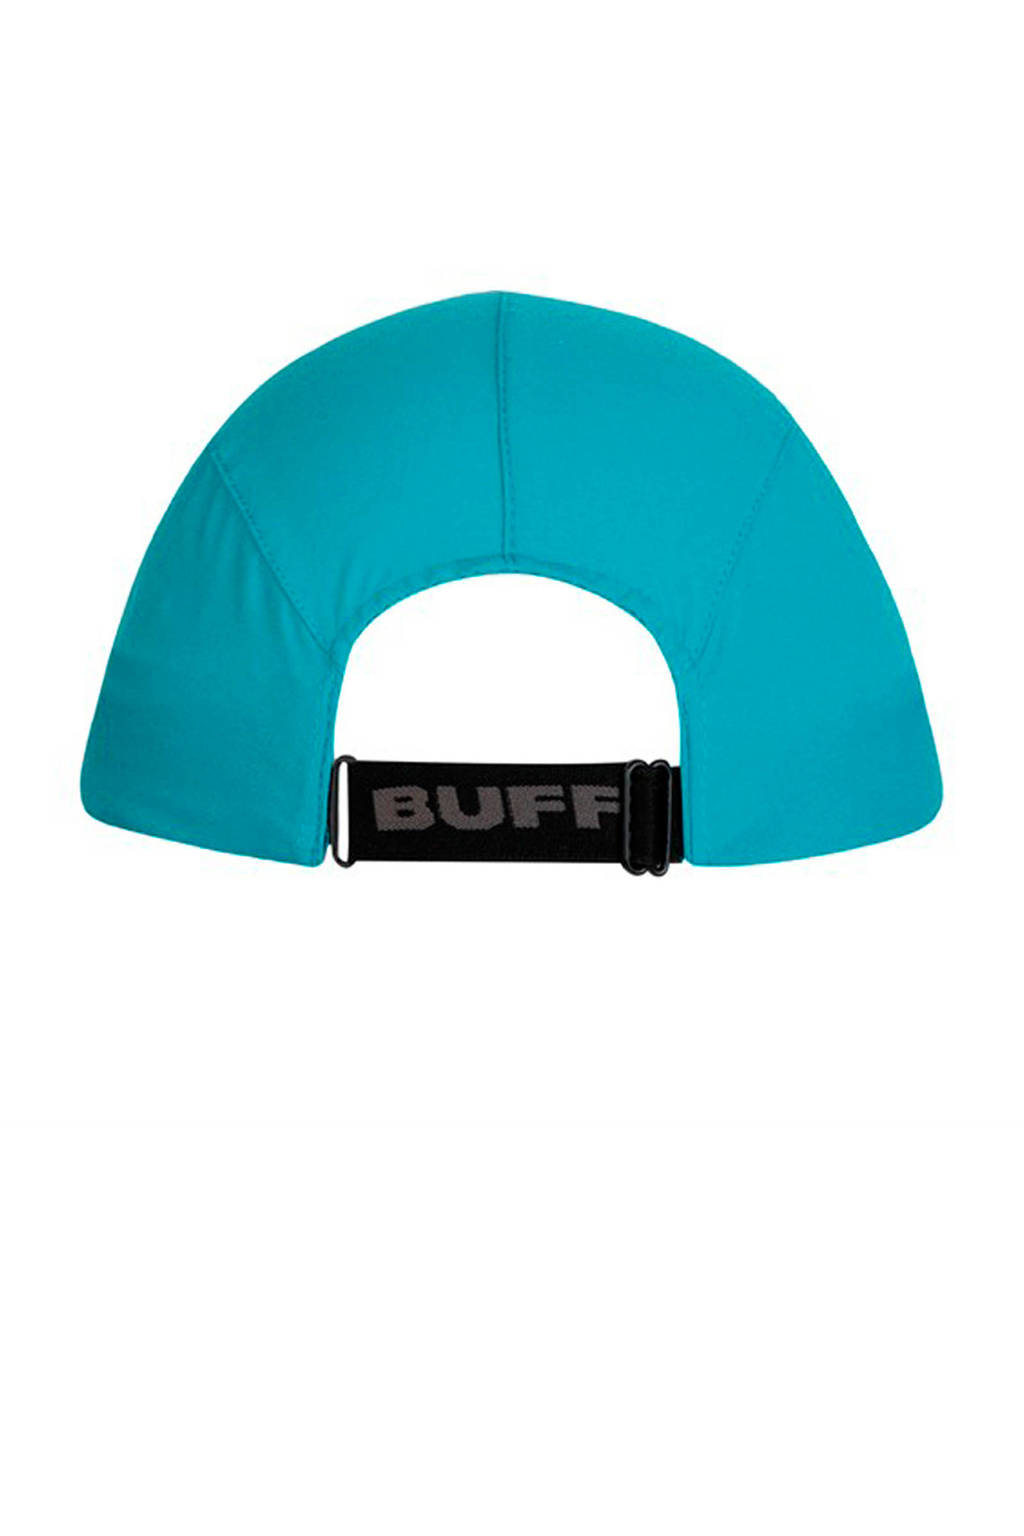 Buff cap Back Pack turquoise, Deep Sea Green